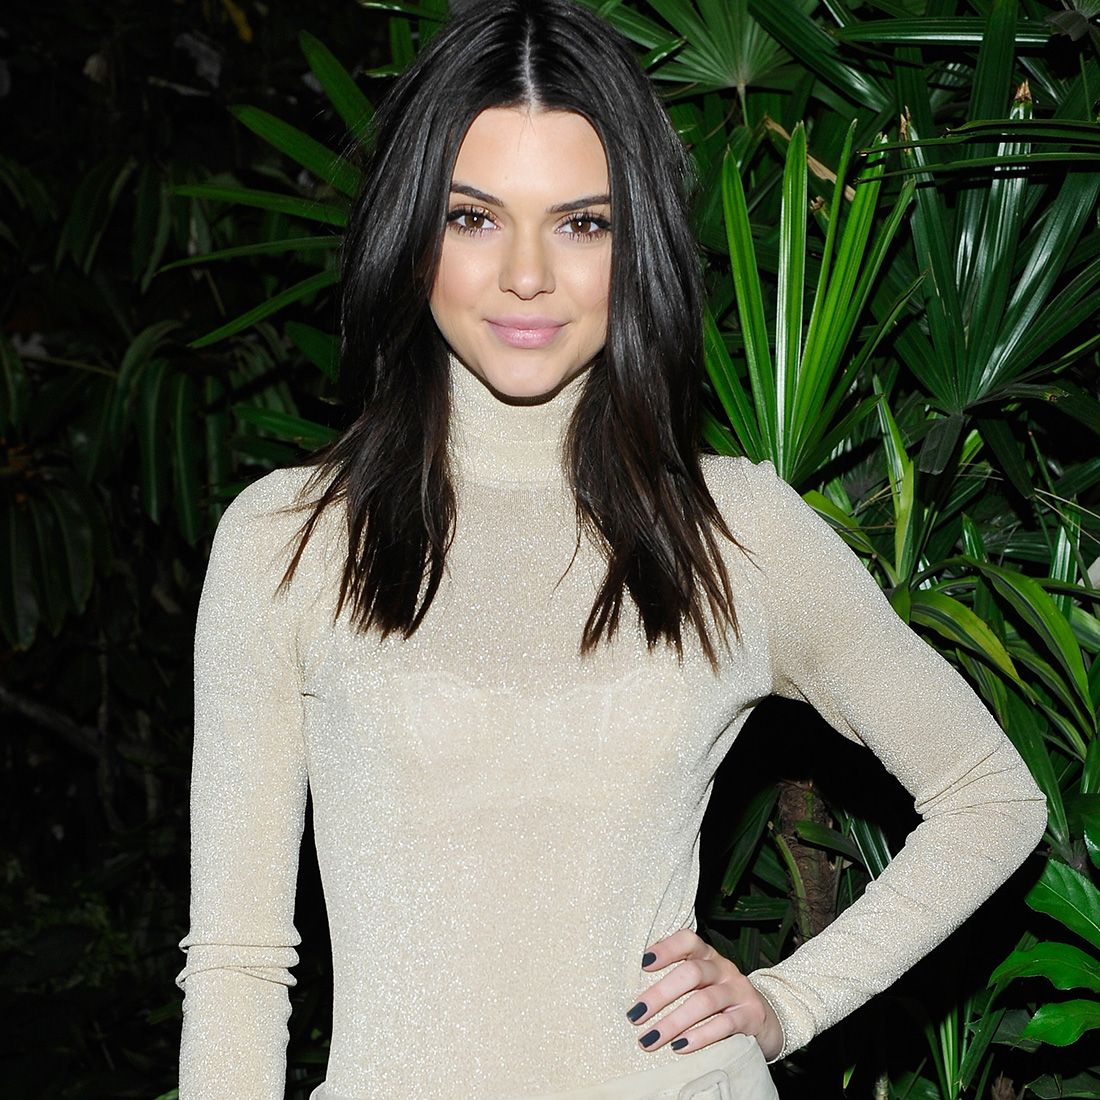 kendall jenner haircut 2015 - Buscar con Google